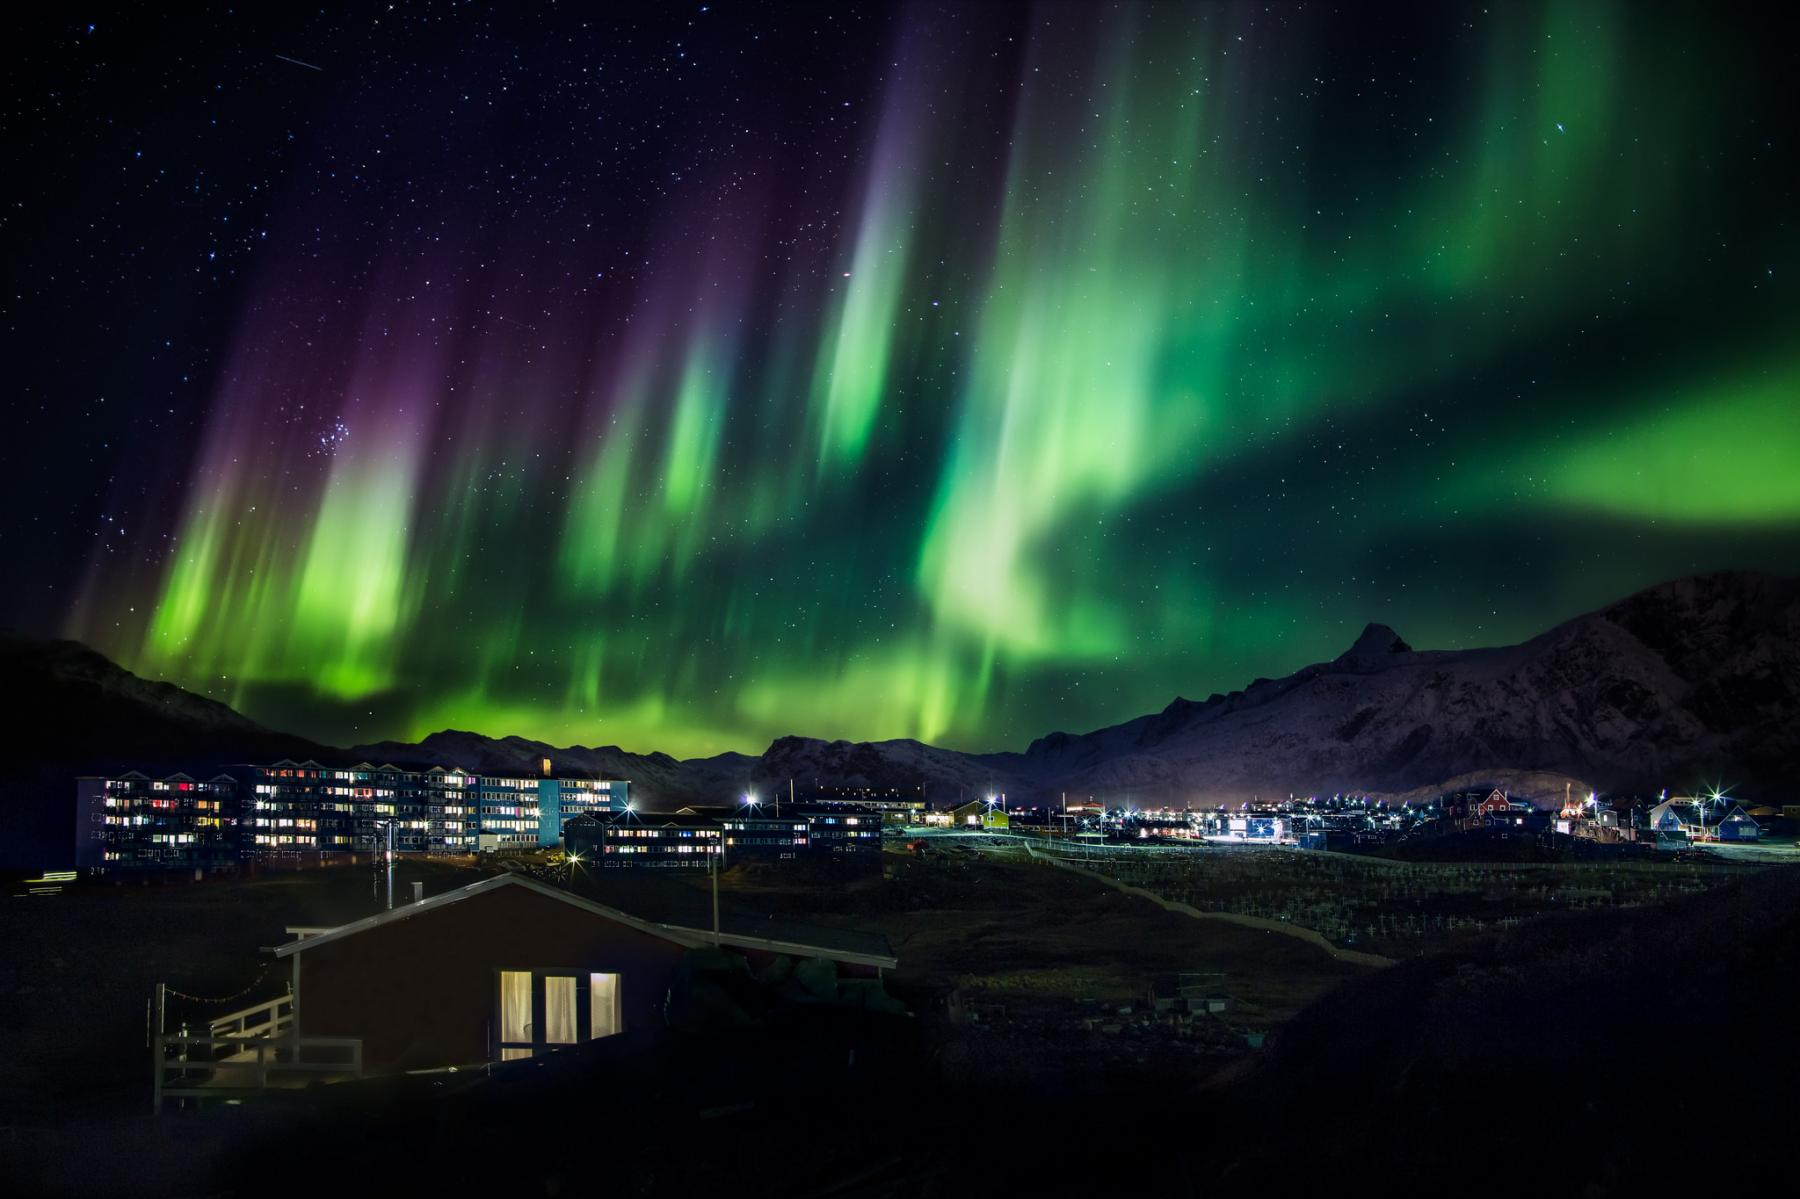 Sleep in igloos, ride on dog sleds under the Greenlandic Northern Lights starting at Kangerlussuaq, Greenland